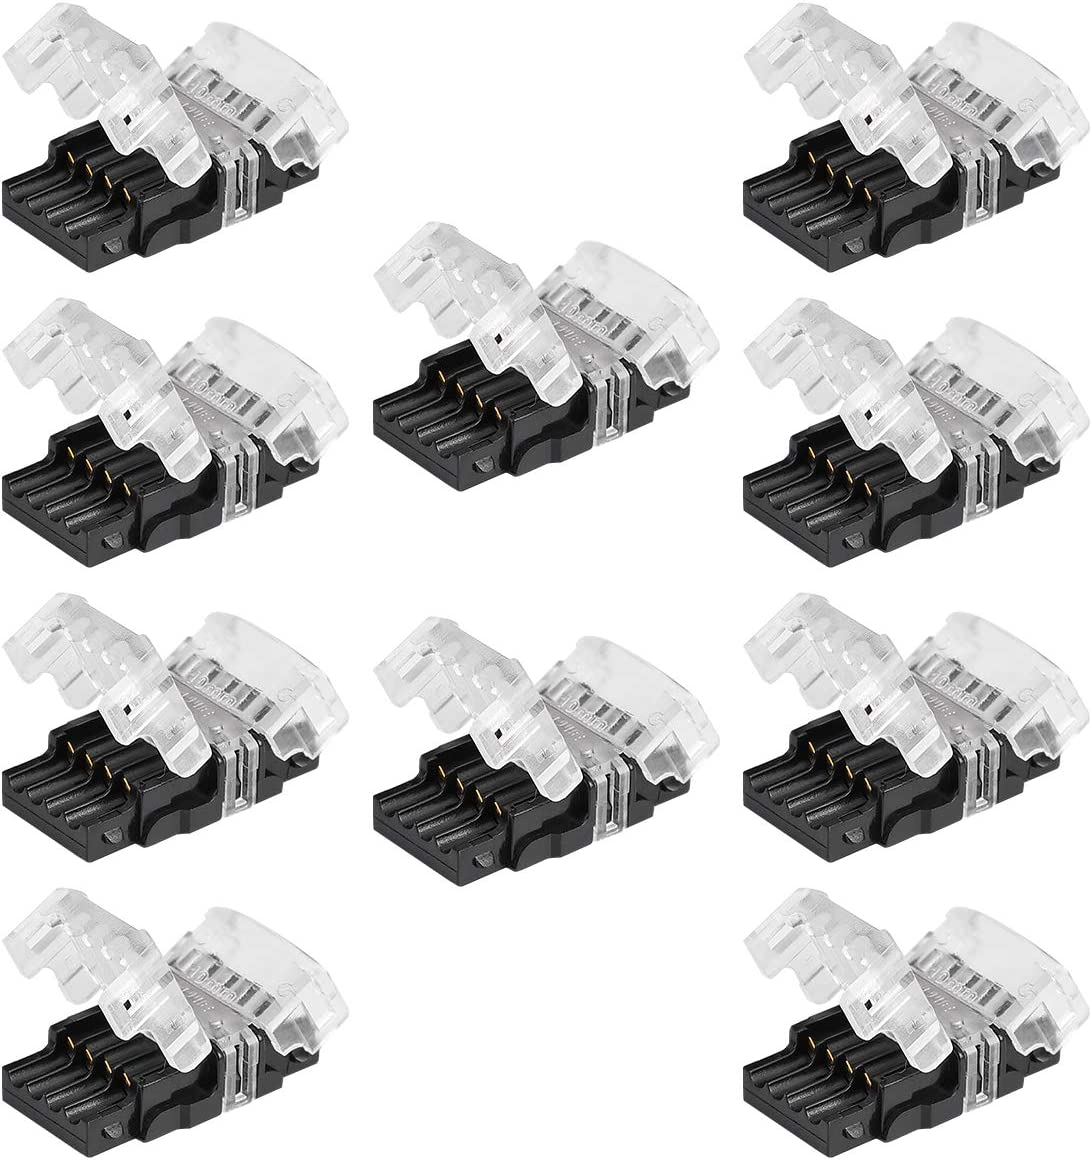 BZONE 10 Pack LED Popular standard Challenge the lowest price Strip Connector Wide Non-Waterproof 10mm for 4